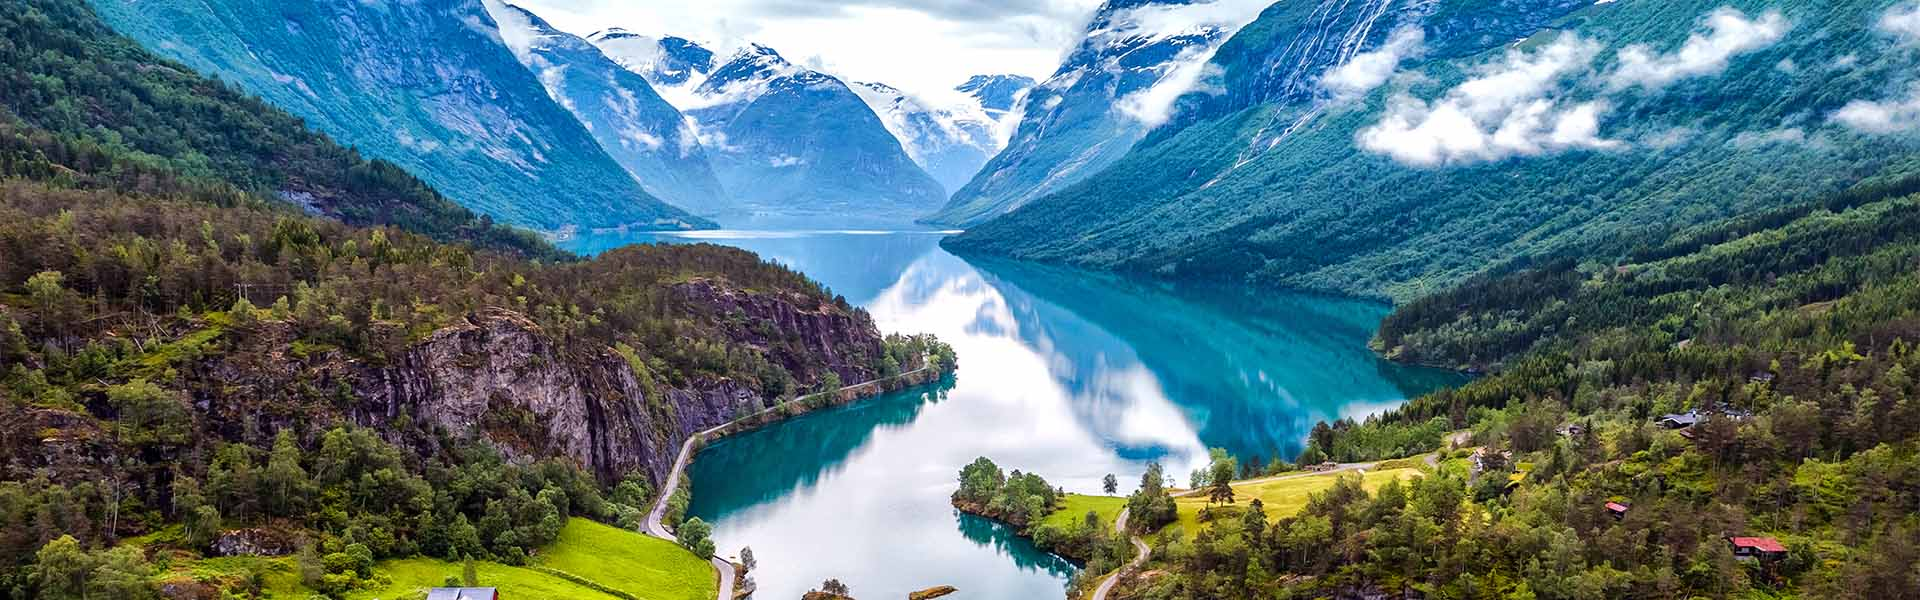 Fjords to fall for: discover Norway's greatest natural wonders